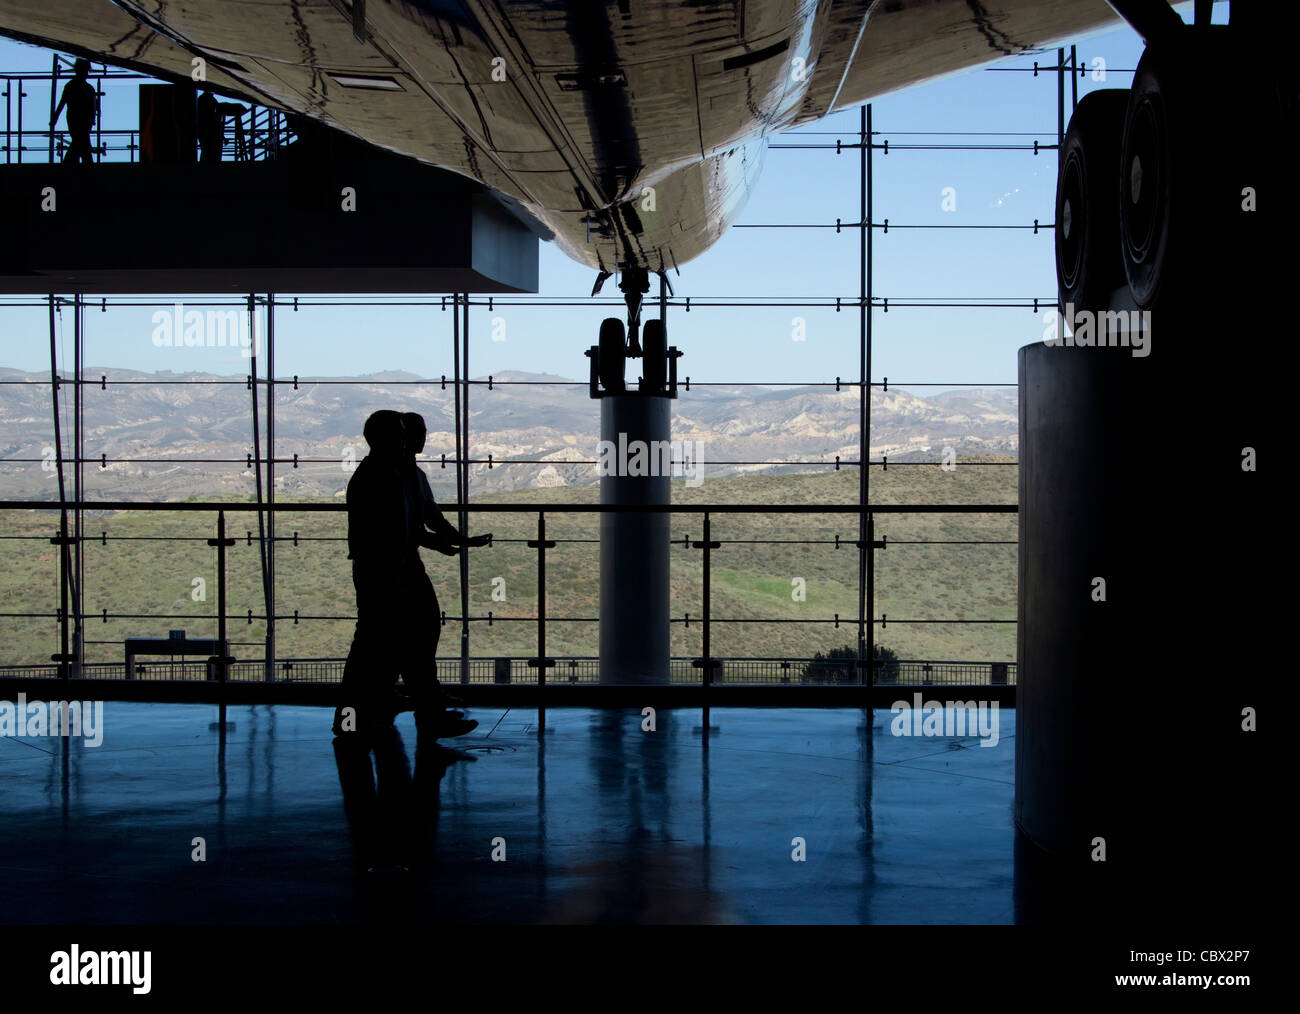 Two men walking underneath Air force One on display at the Ronald Regan Presidential Library - Stock Image